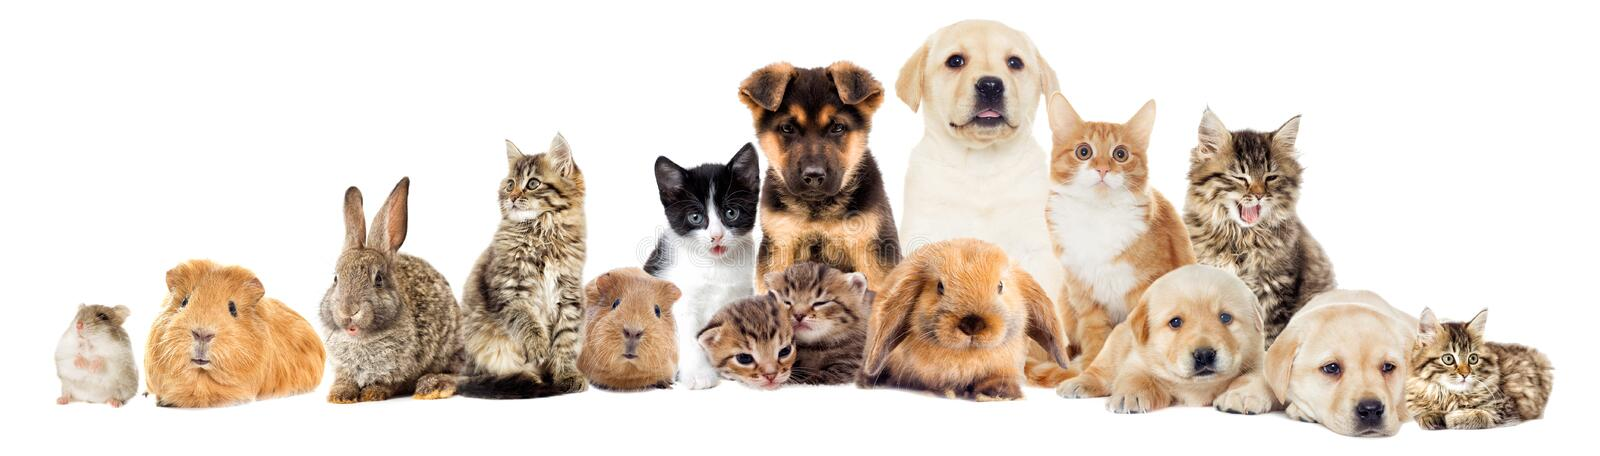 Placez les animaux familiers photo stock